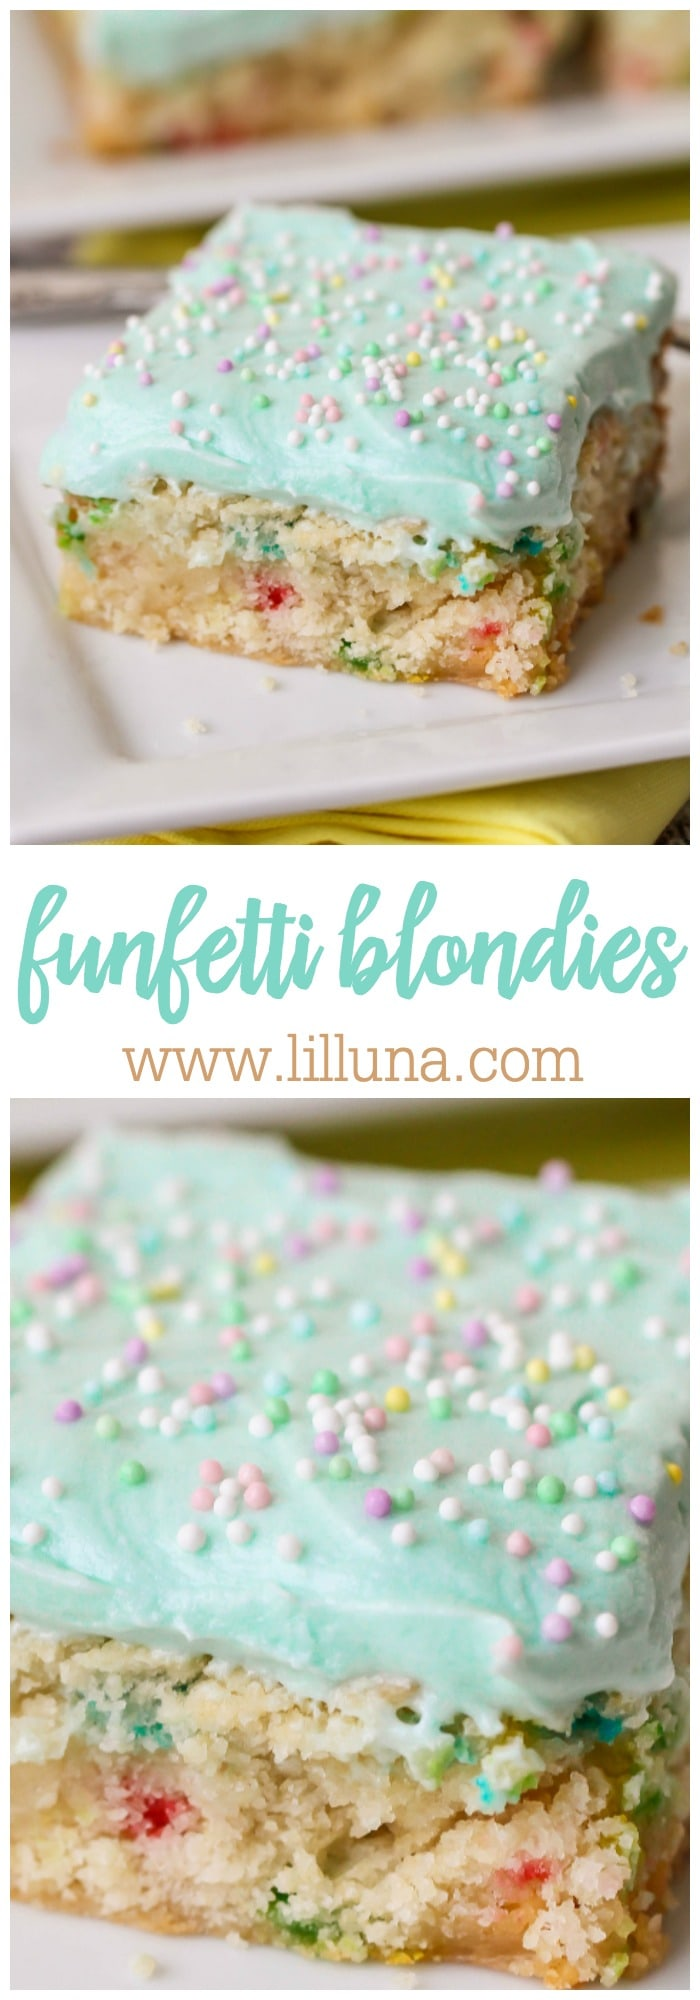 Funfetti Blondies - made with a funfetti cake mix and a few extra ingredients, these babies are easy peasy!! So yummy with delicious homemade frosting on top!